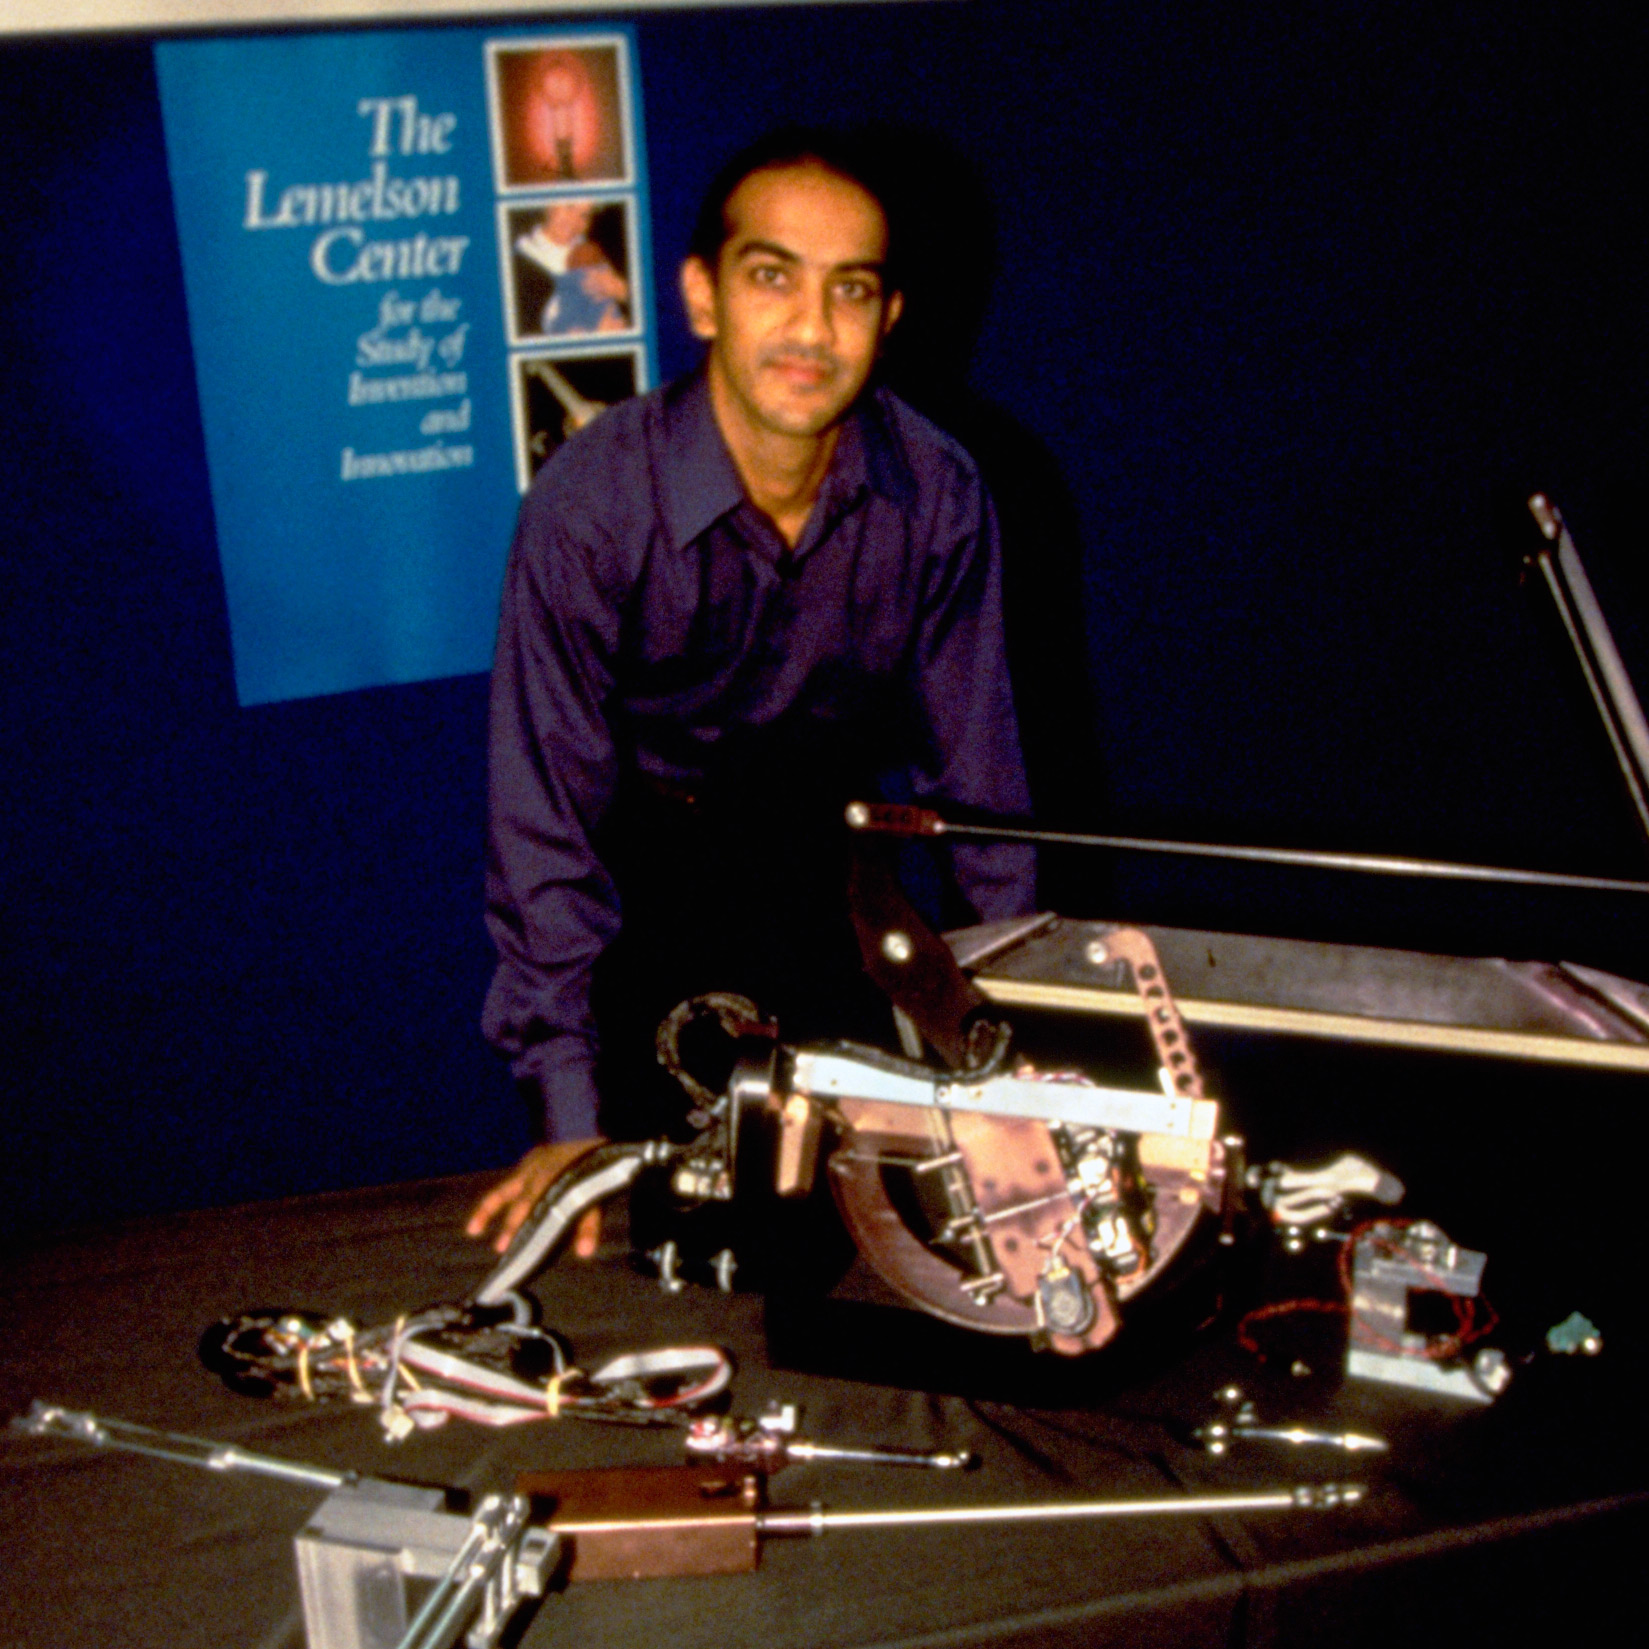 Image of Akhil Madhani with some of his robot inventions